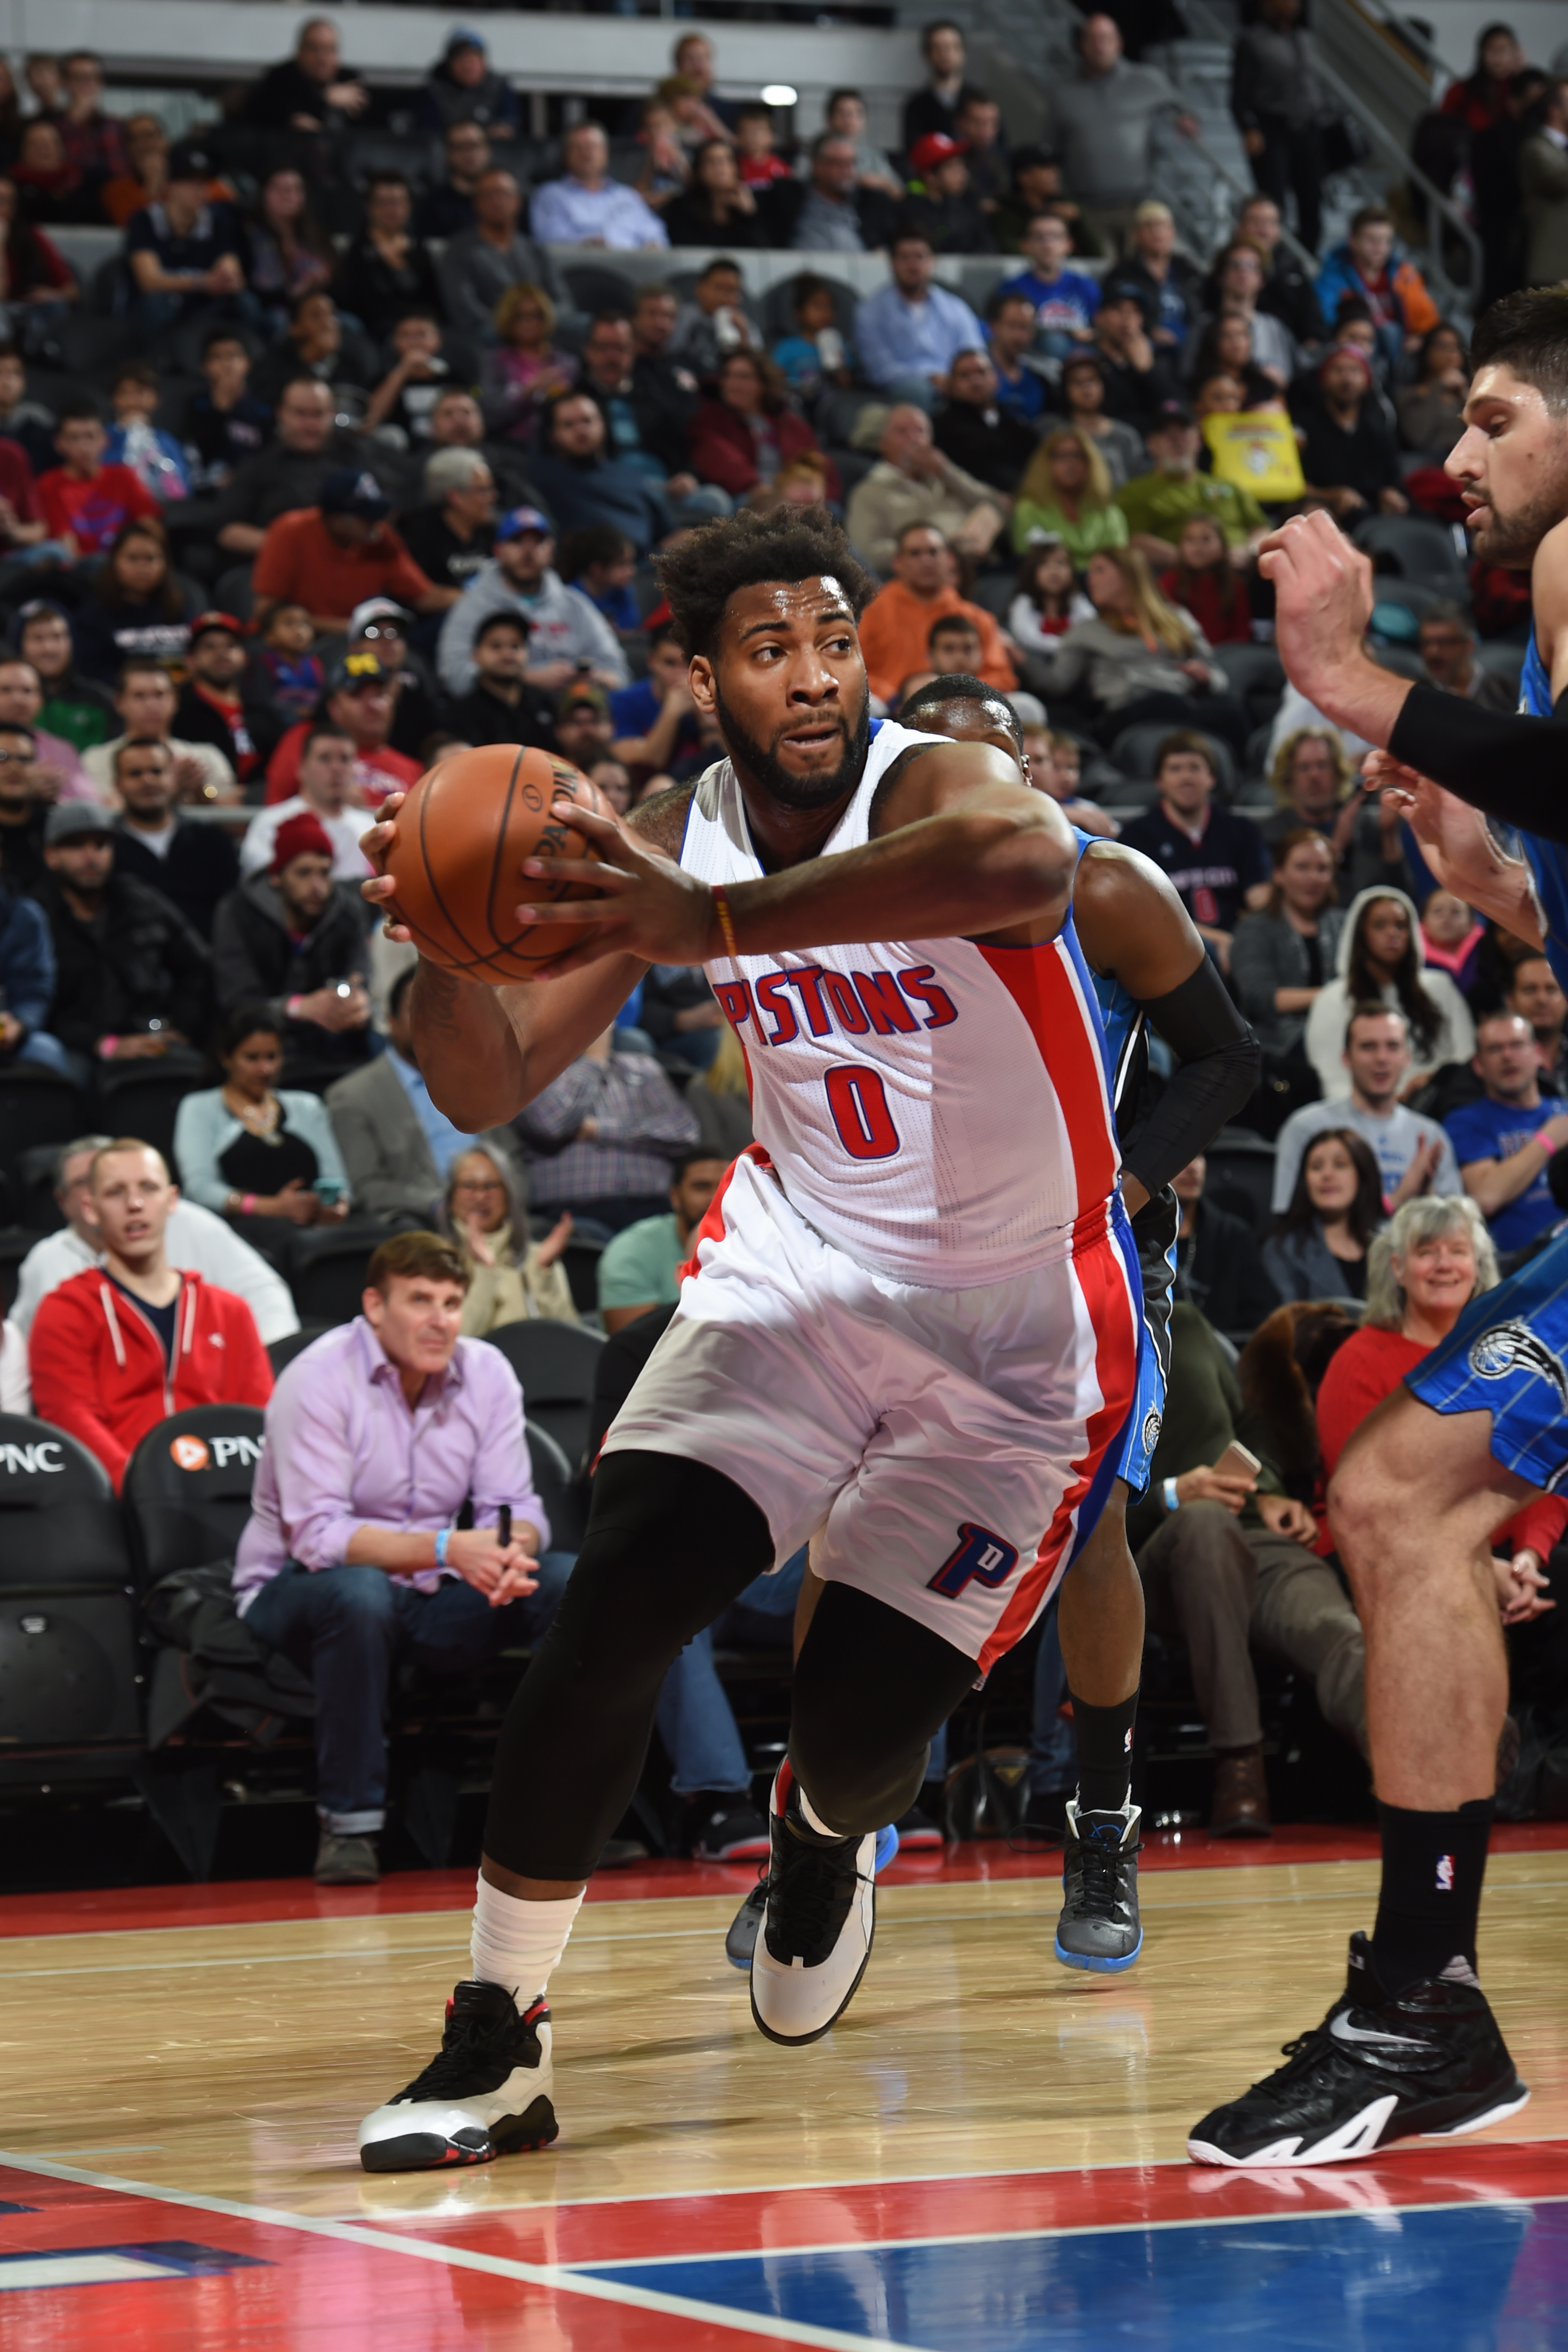 AUBURN HILLS, MI - JANUARY 4: Andre Drummond #0 of the Detroit Pistons drives to the basket against the Orlando Magic during the game on January 4, 2016 at The Palace of Auburns in Auburn Hills, Michigan. (Photo by Allen Einstein/NBAE via Getty Images)